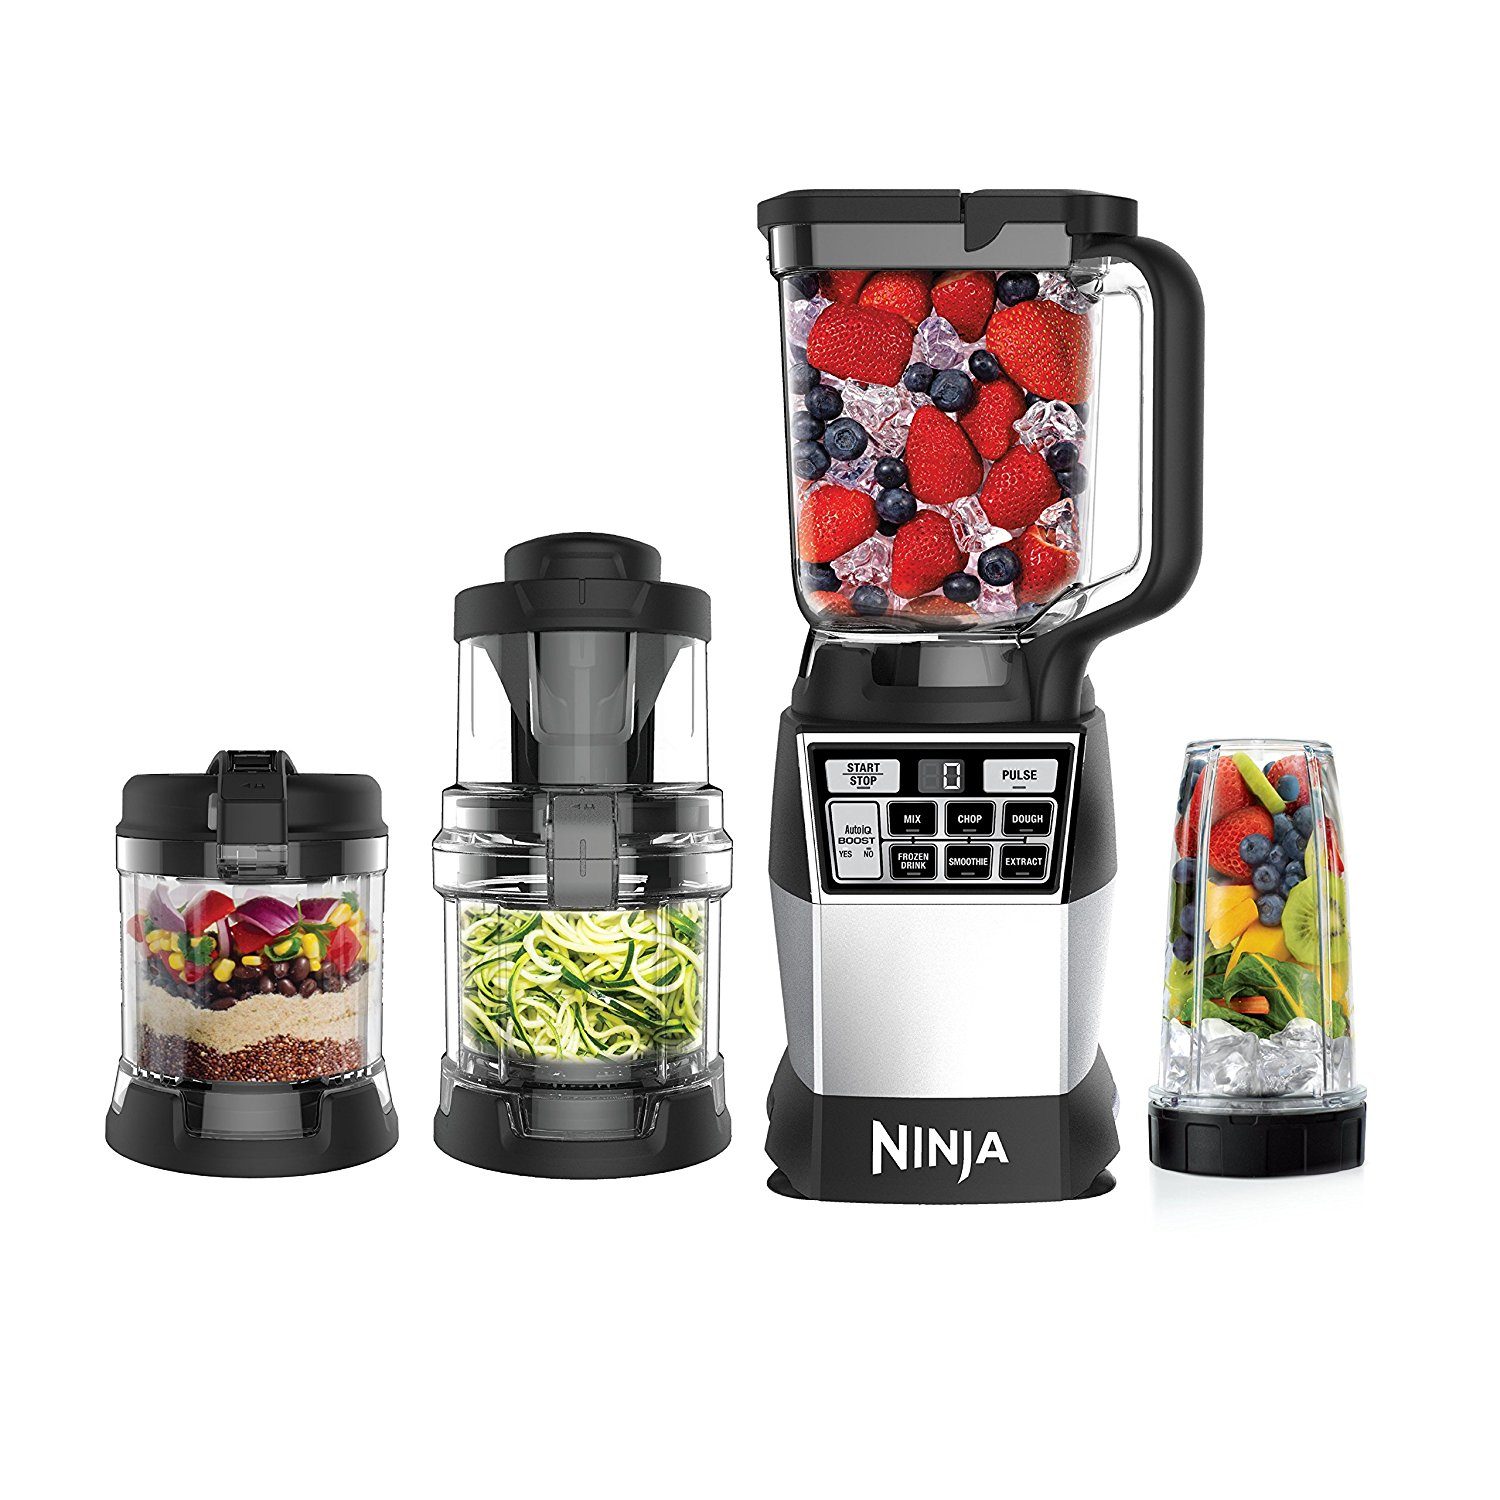 Ninja NN210Q 4-in-1 Blender and Food 1200-Watt Processor System, Black